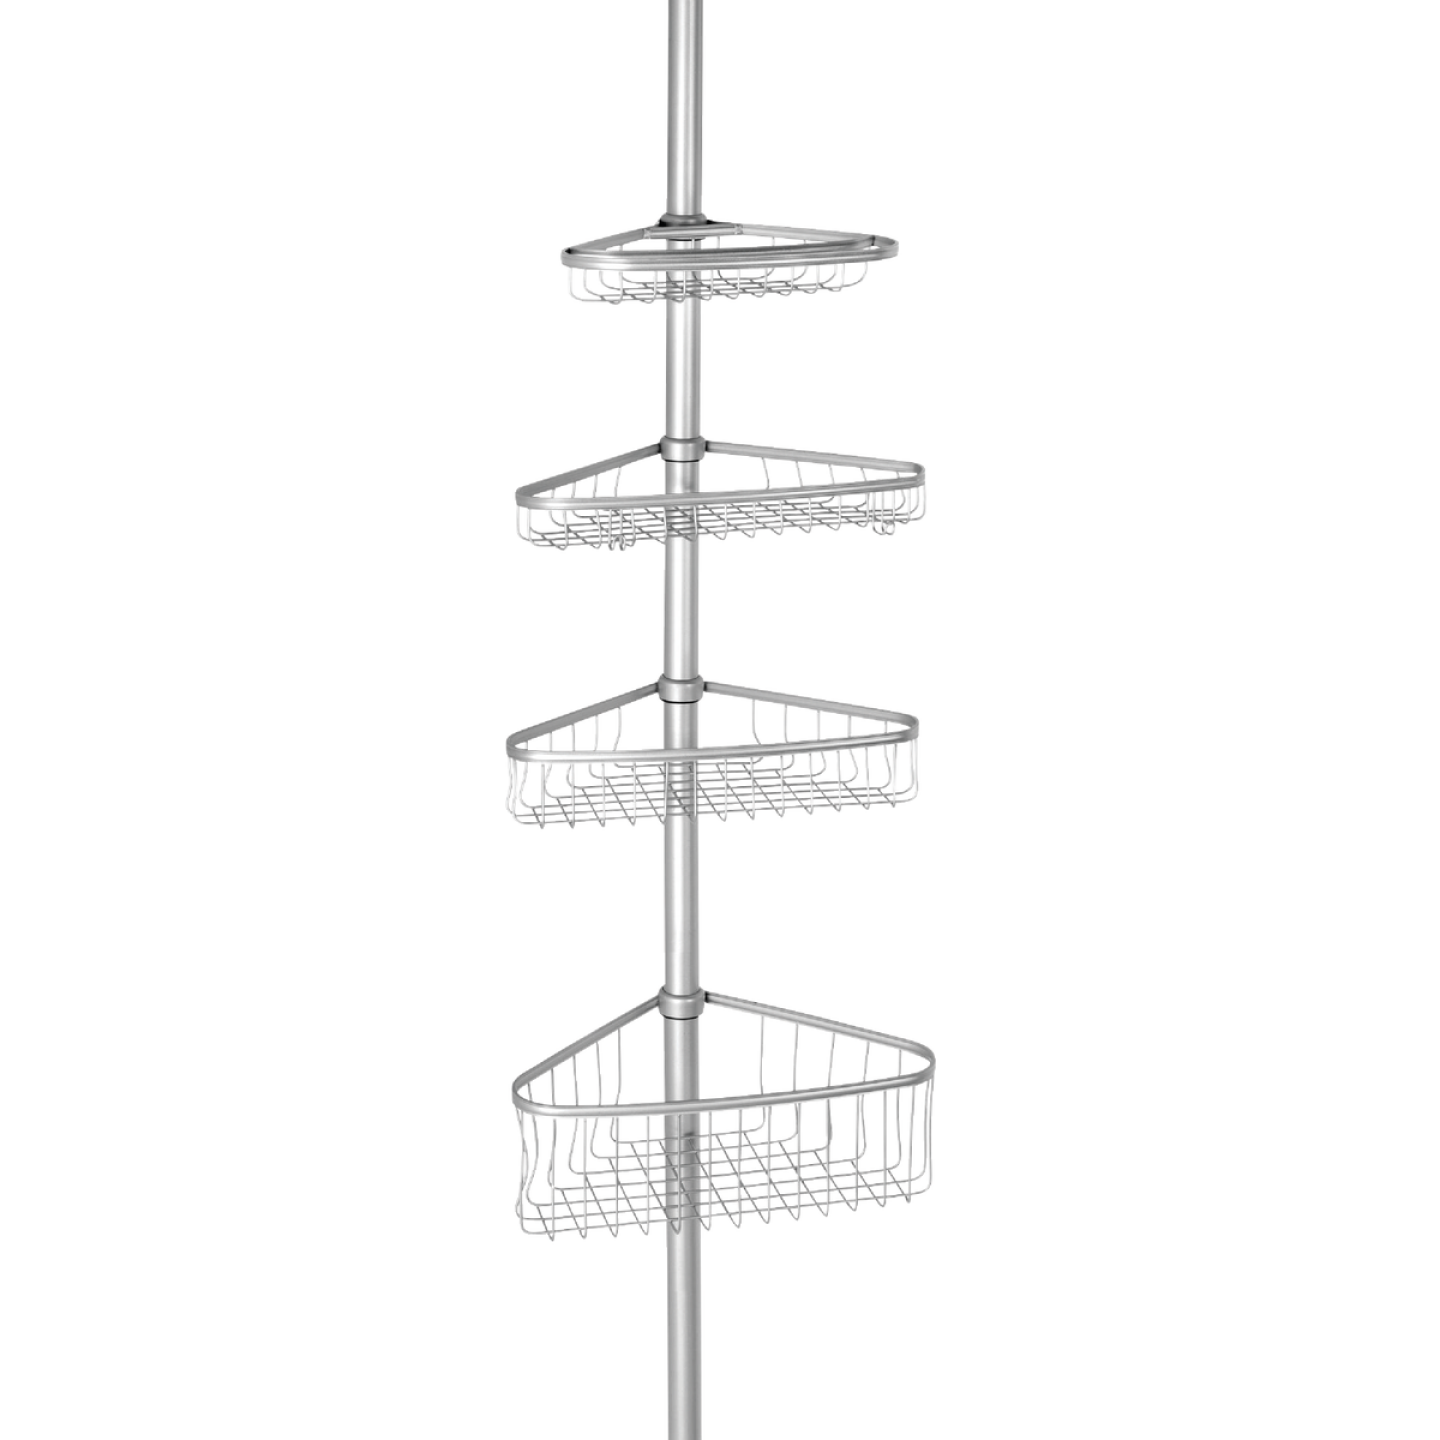 iDesign York Tension 4-Shelf Silver Shower Caddy Image 1